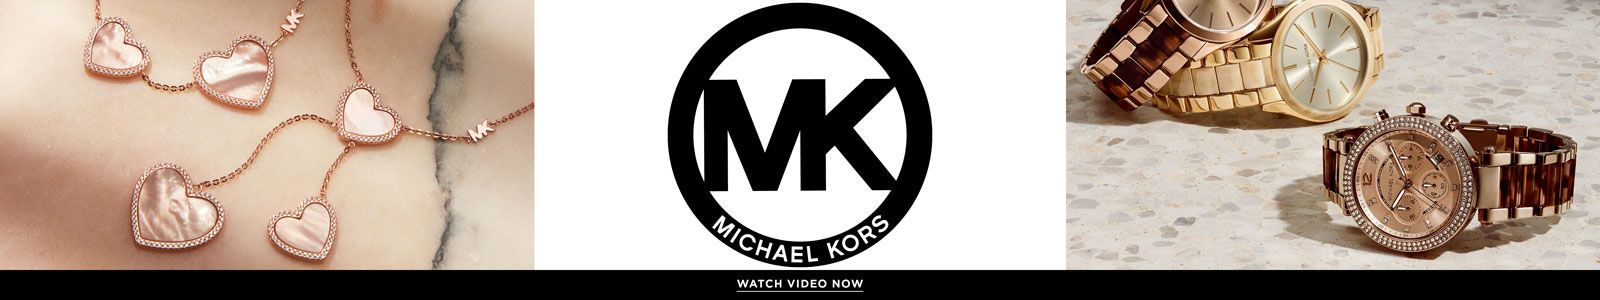 Michael Kors, Watch Video Now